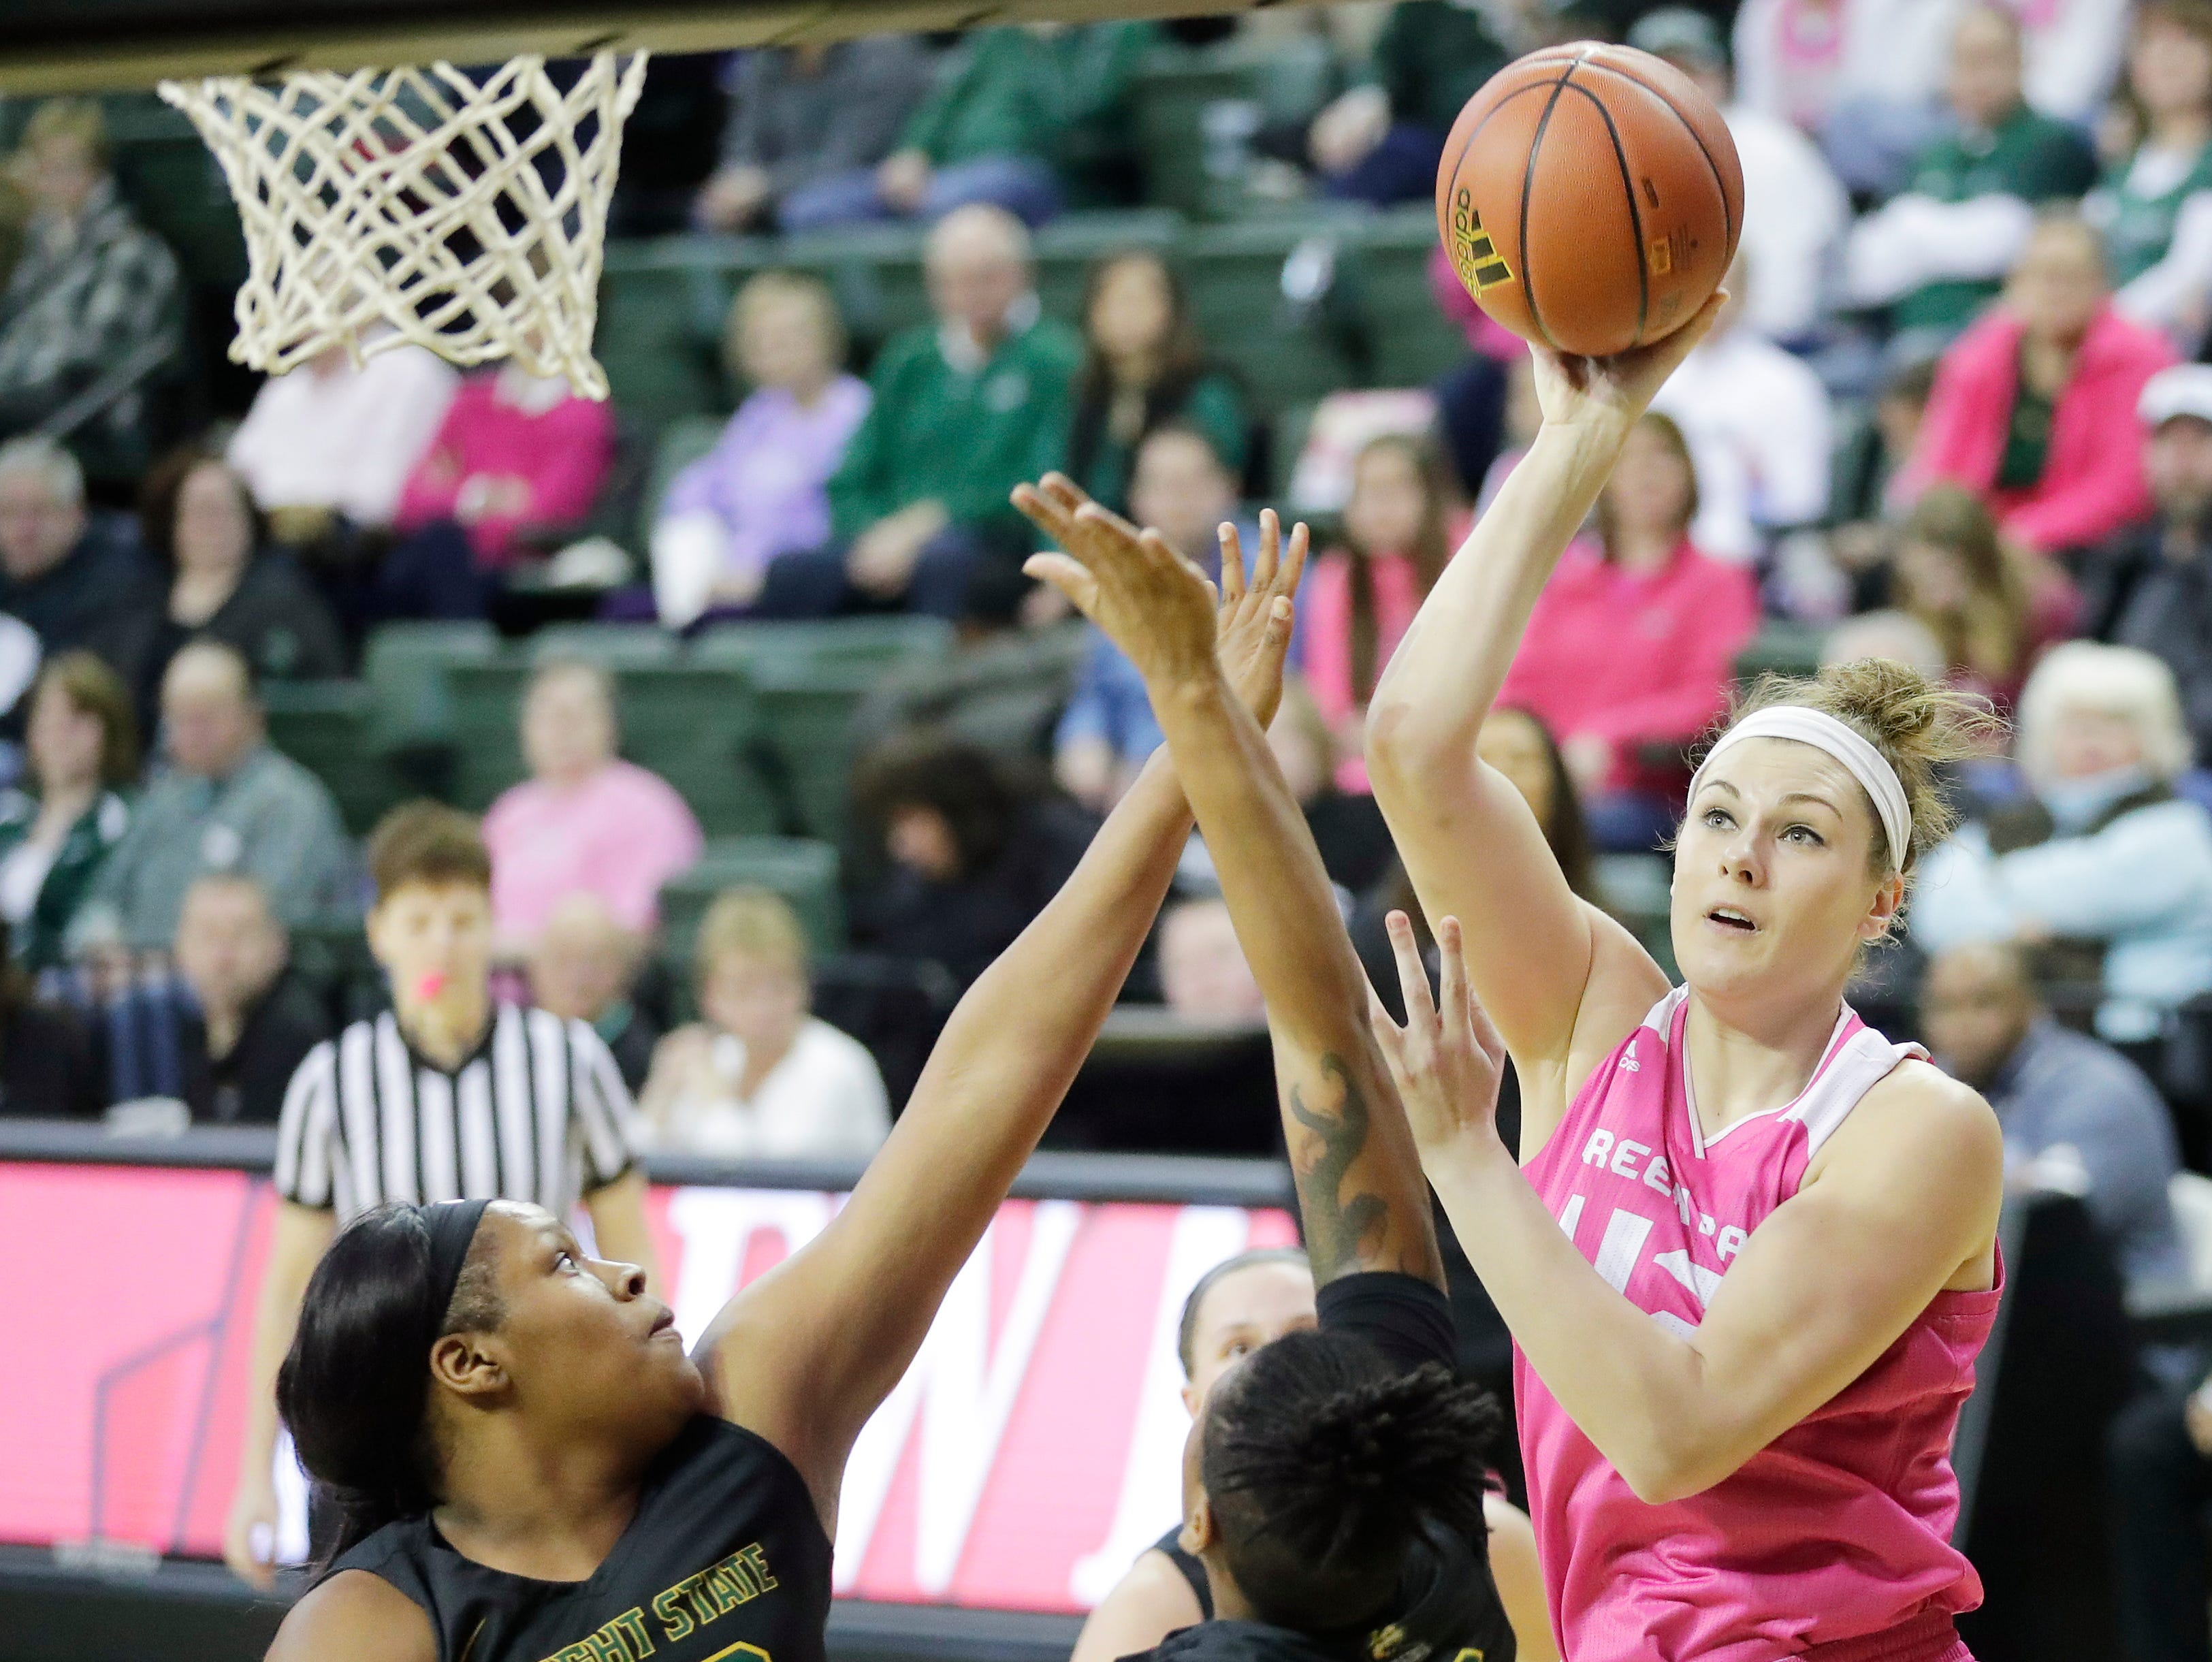 Green Bay Phoenix forward/center Mackenzie Wolf (42) shoots past Wright State Raiders center Tyler Frierson (33) in a Horizon League women's basketball game at the Kress Center on Saturday, February 9, 2019 in Green Bay, Wis.